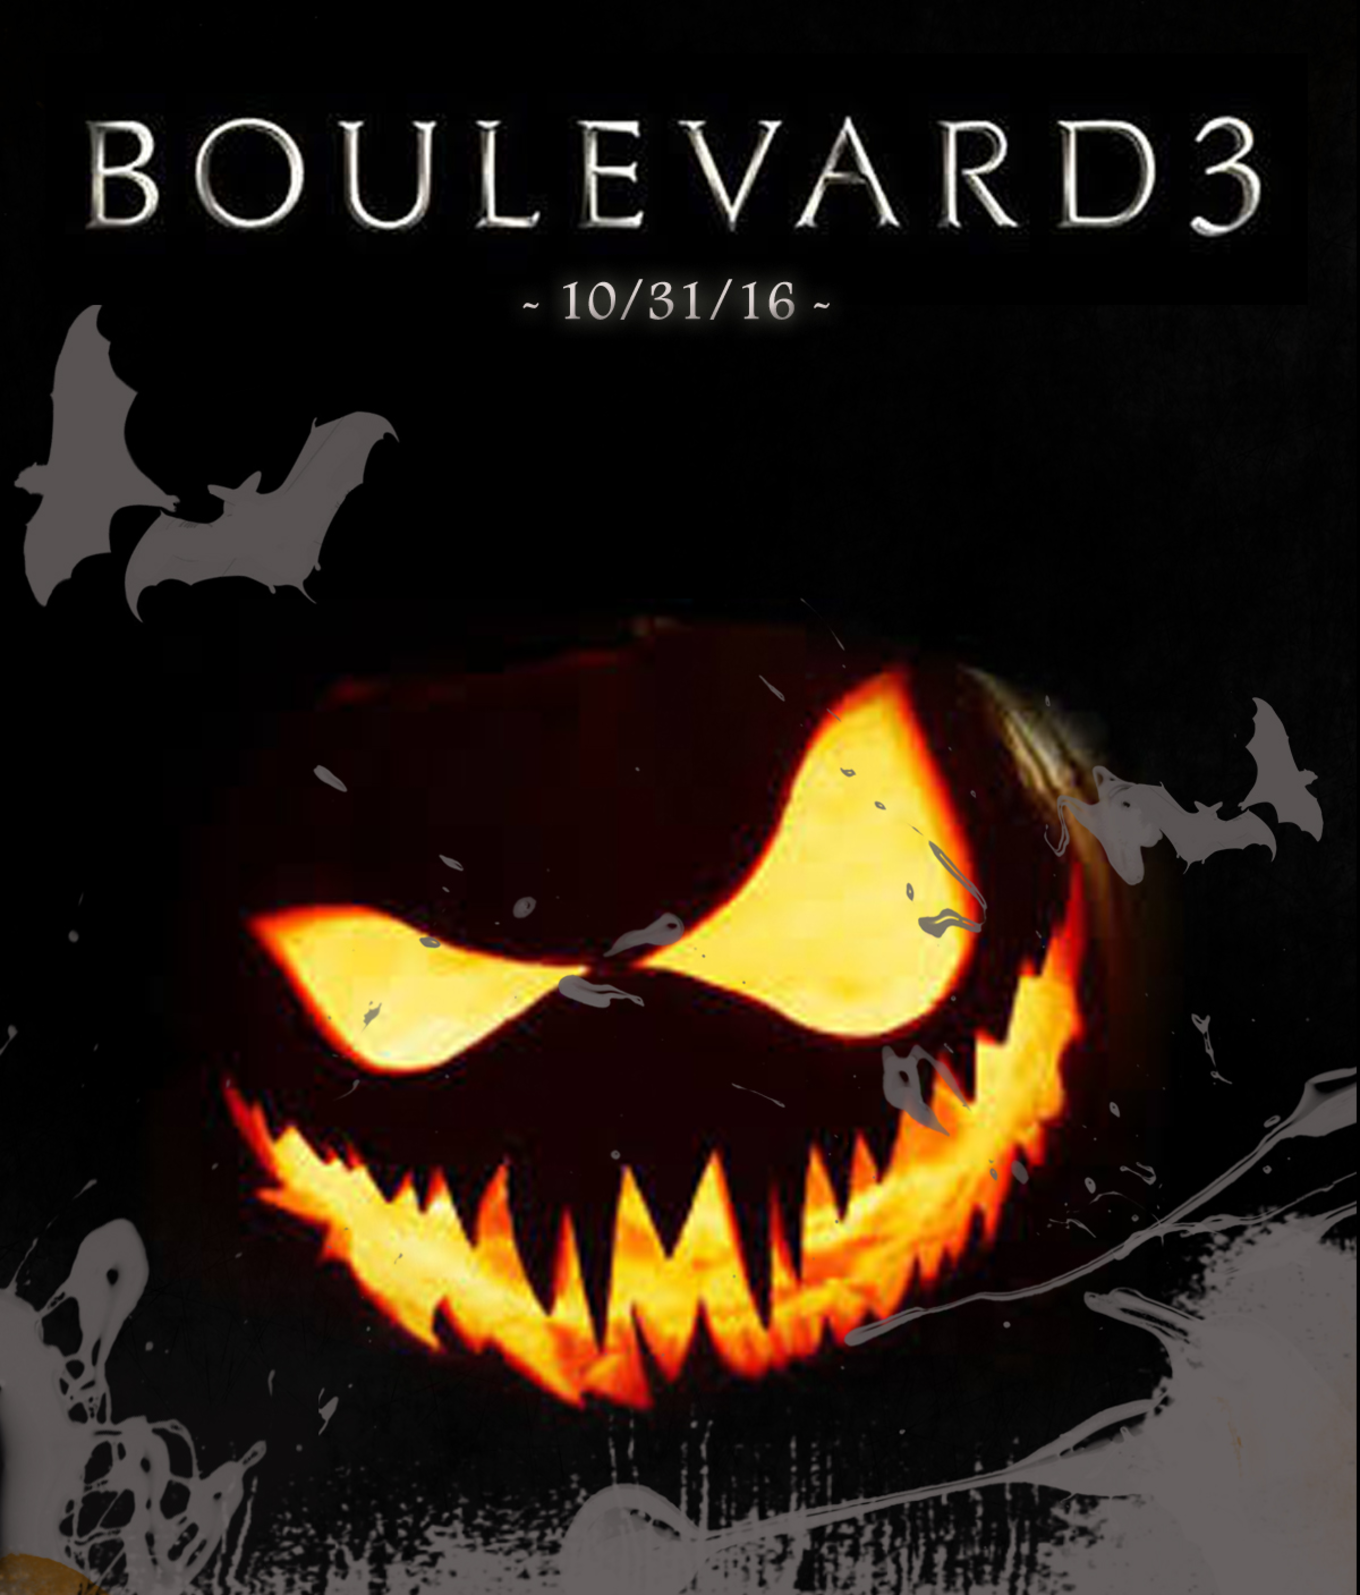 HALLOWEEN NIGHT PARTY AT BOULEVARD 3 - Tickets - Boulevard 3 ... 8dcdce7fed1c